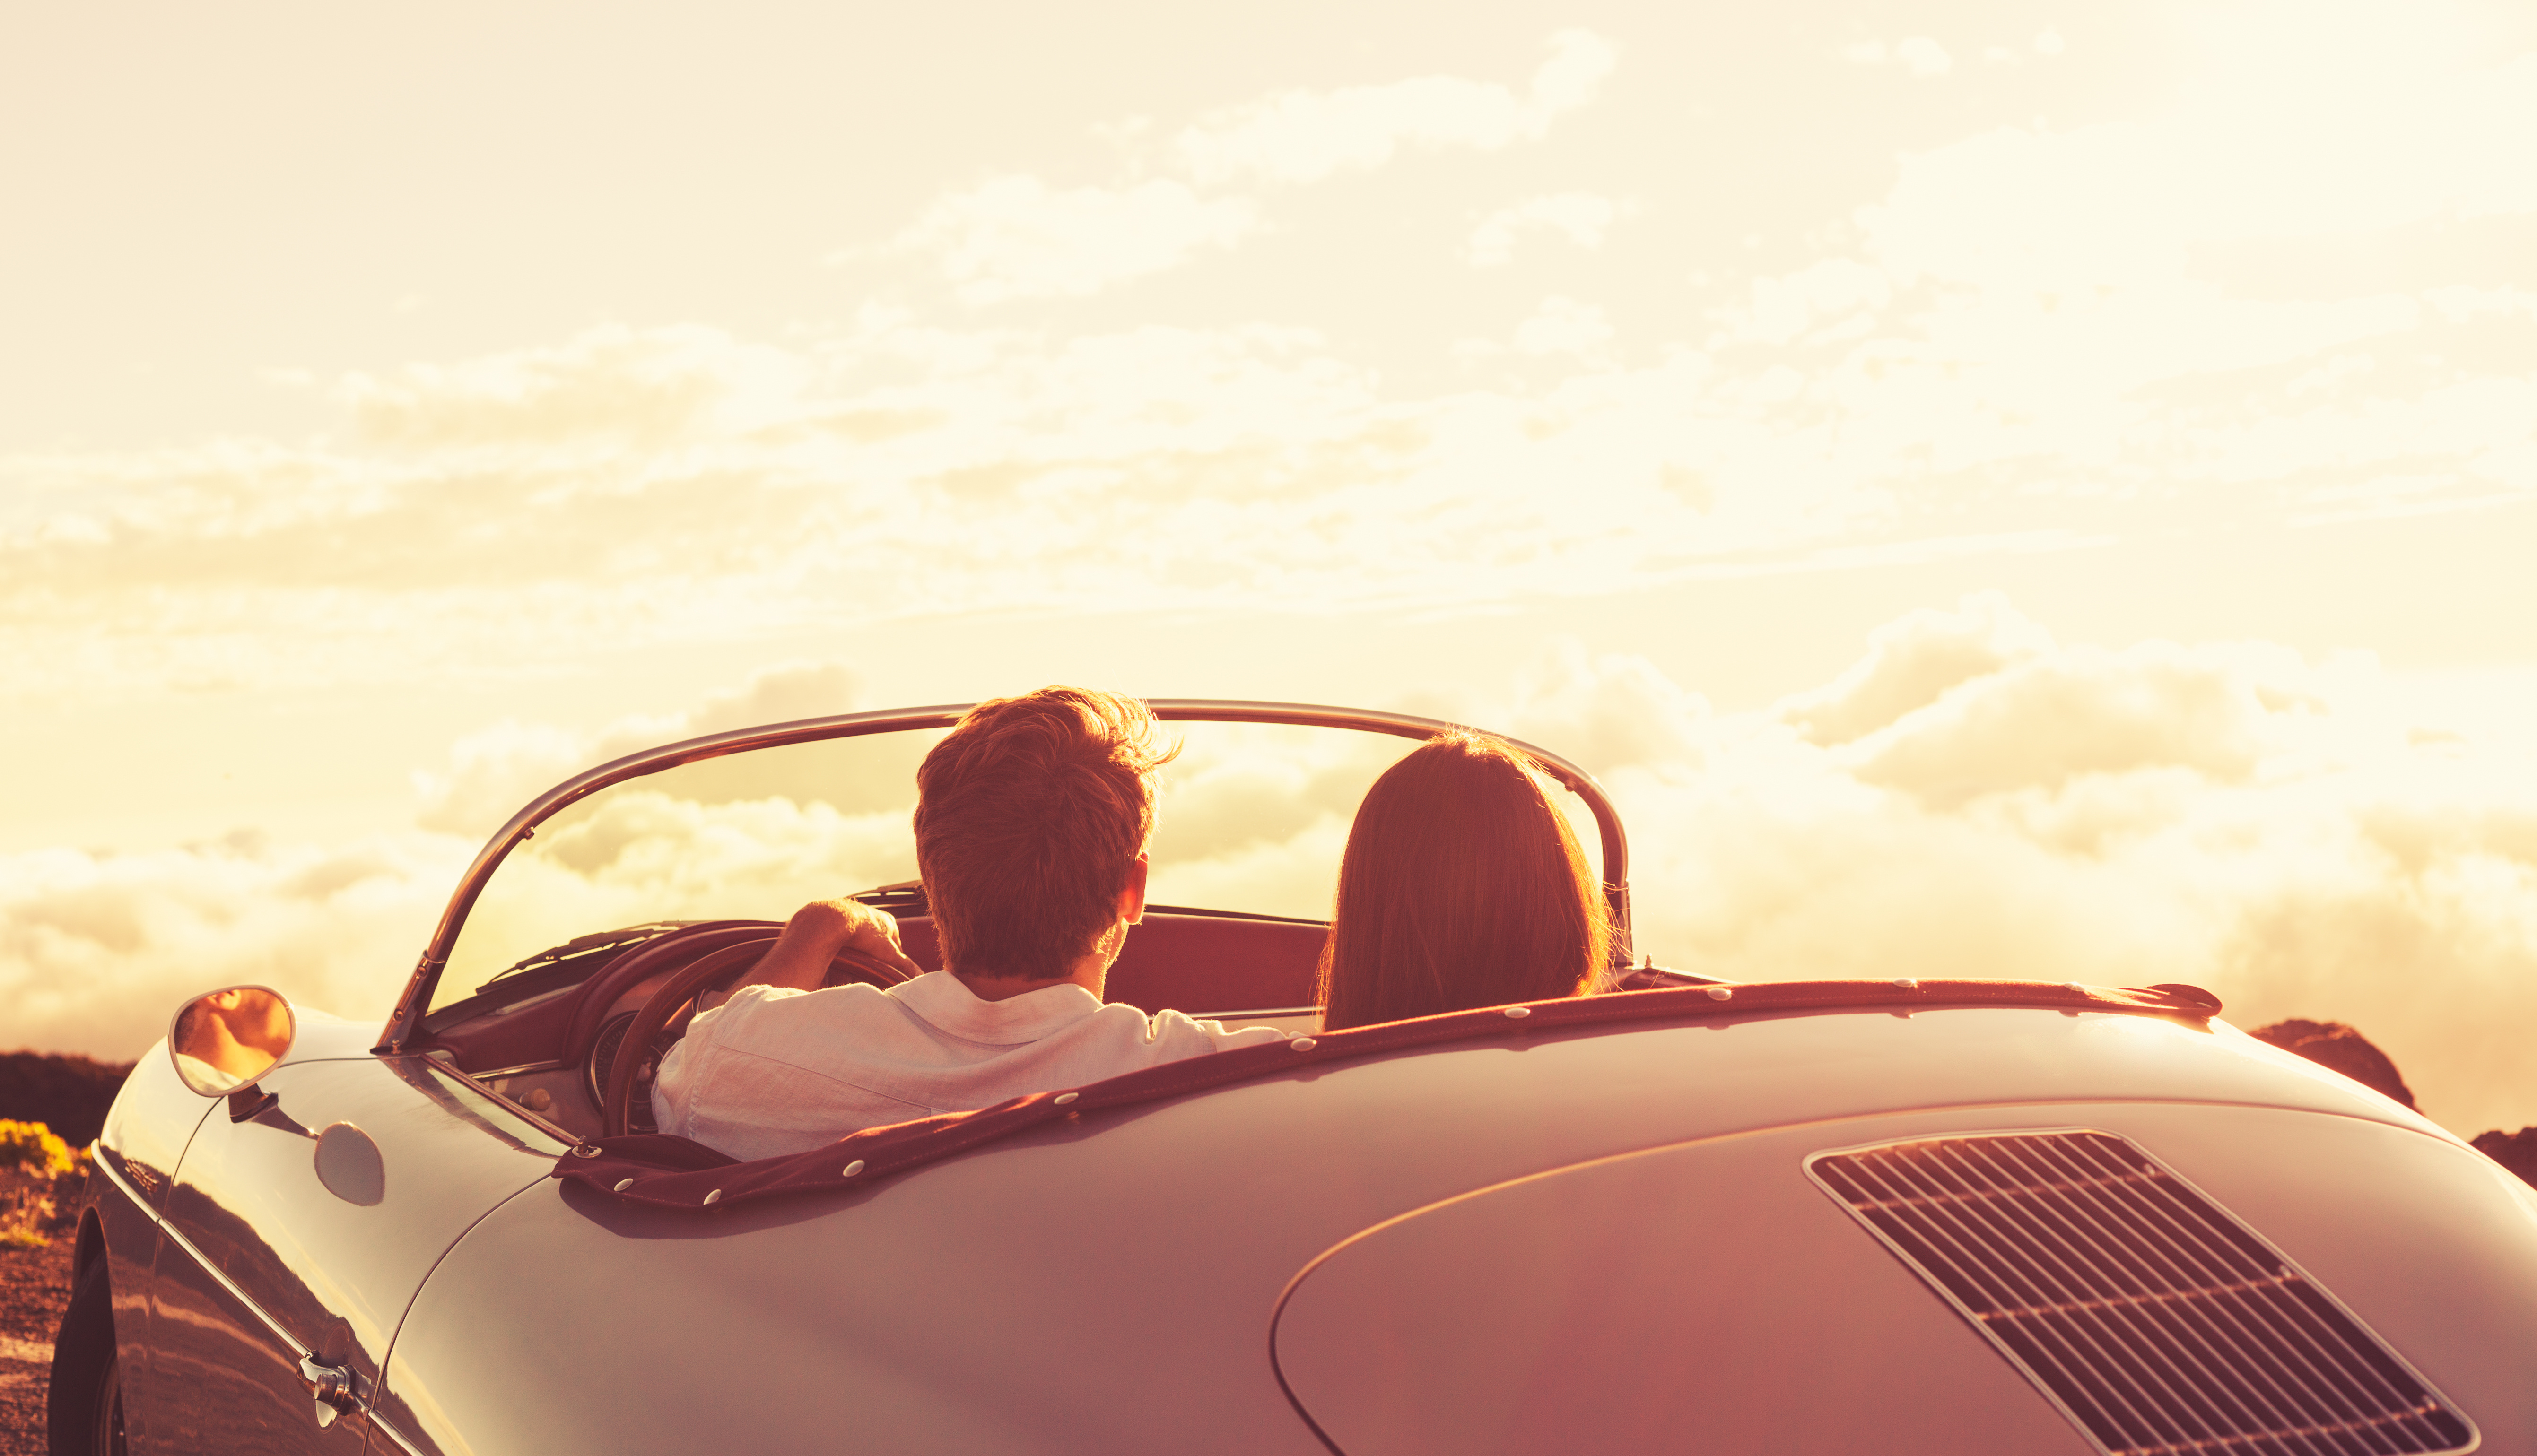 Retro Bedroom Ideas Couple Watching The Sunset In Classic Vintage Car Custom